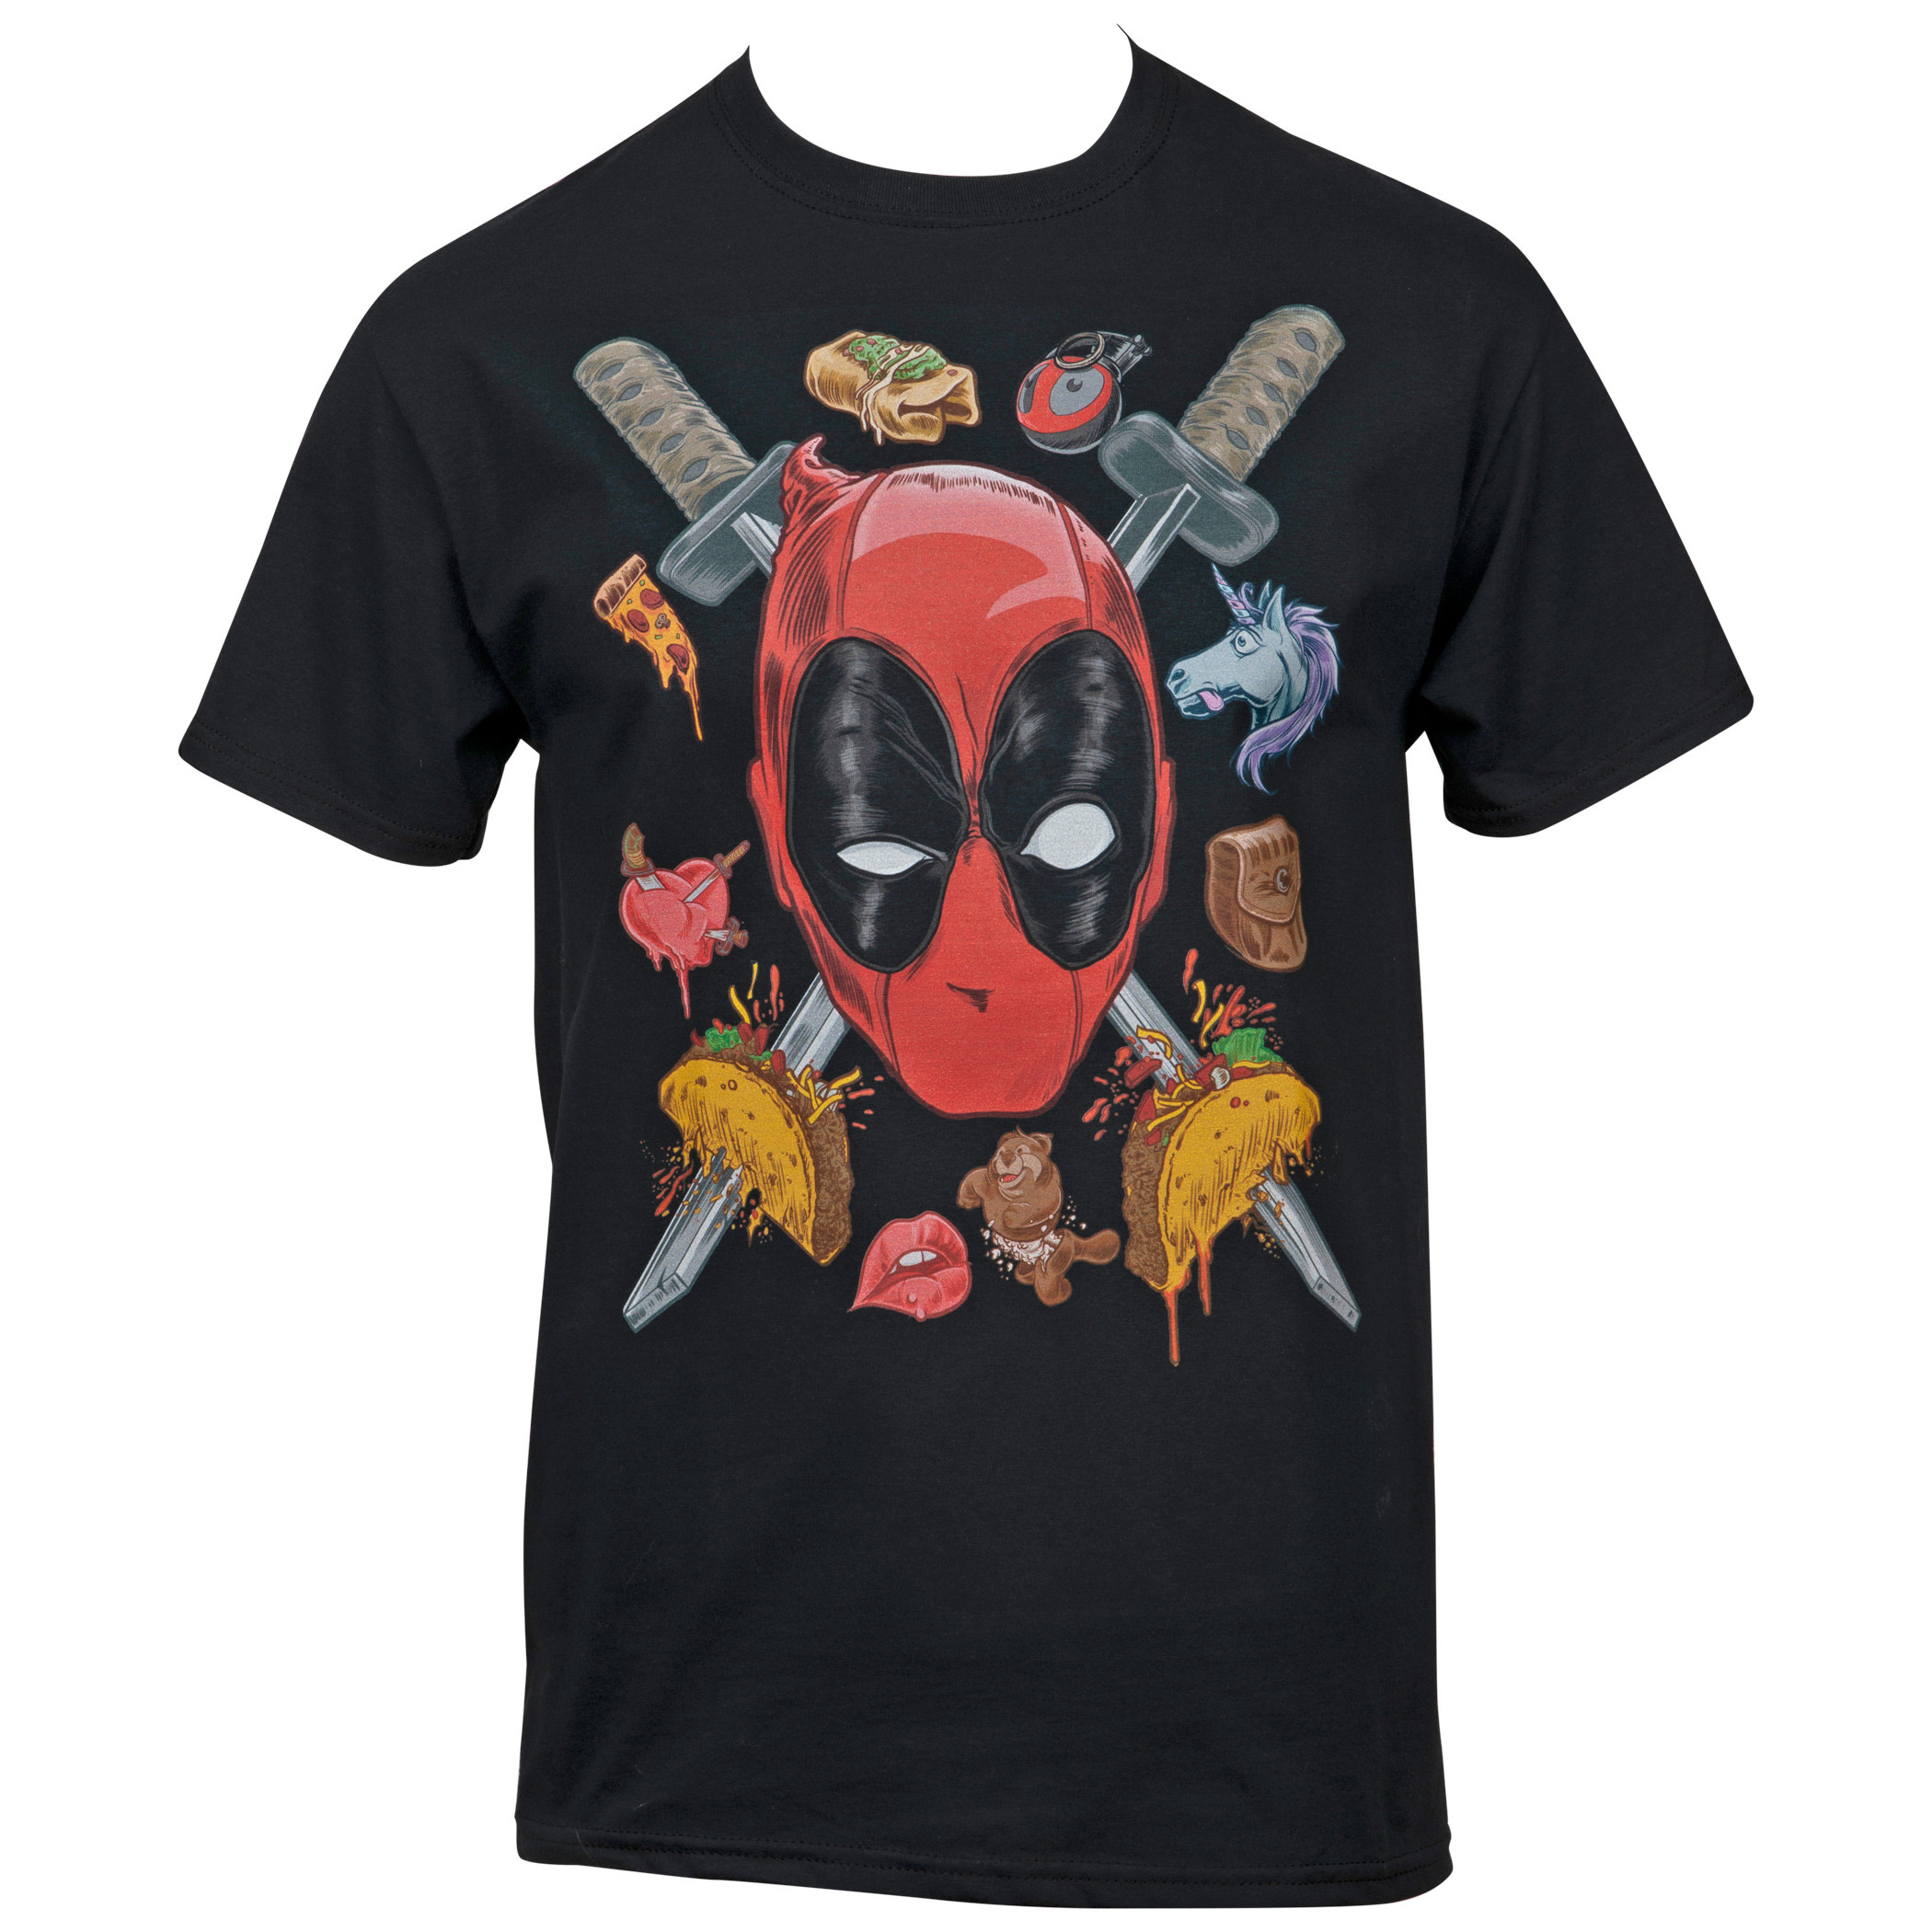 Marvel Deadpool Two Swords For My Thoughts T-shirt